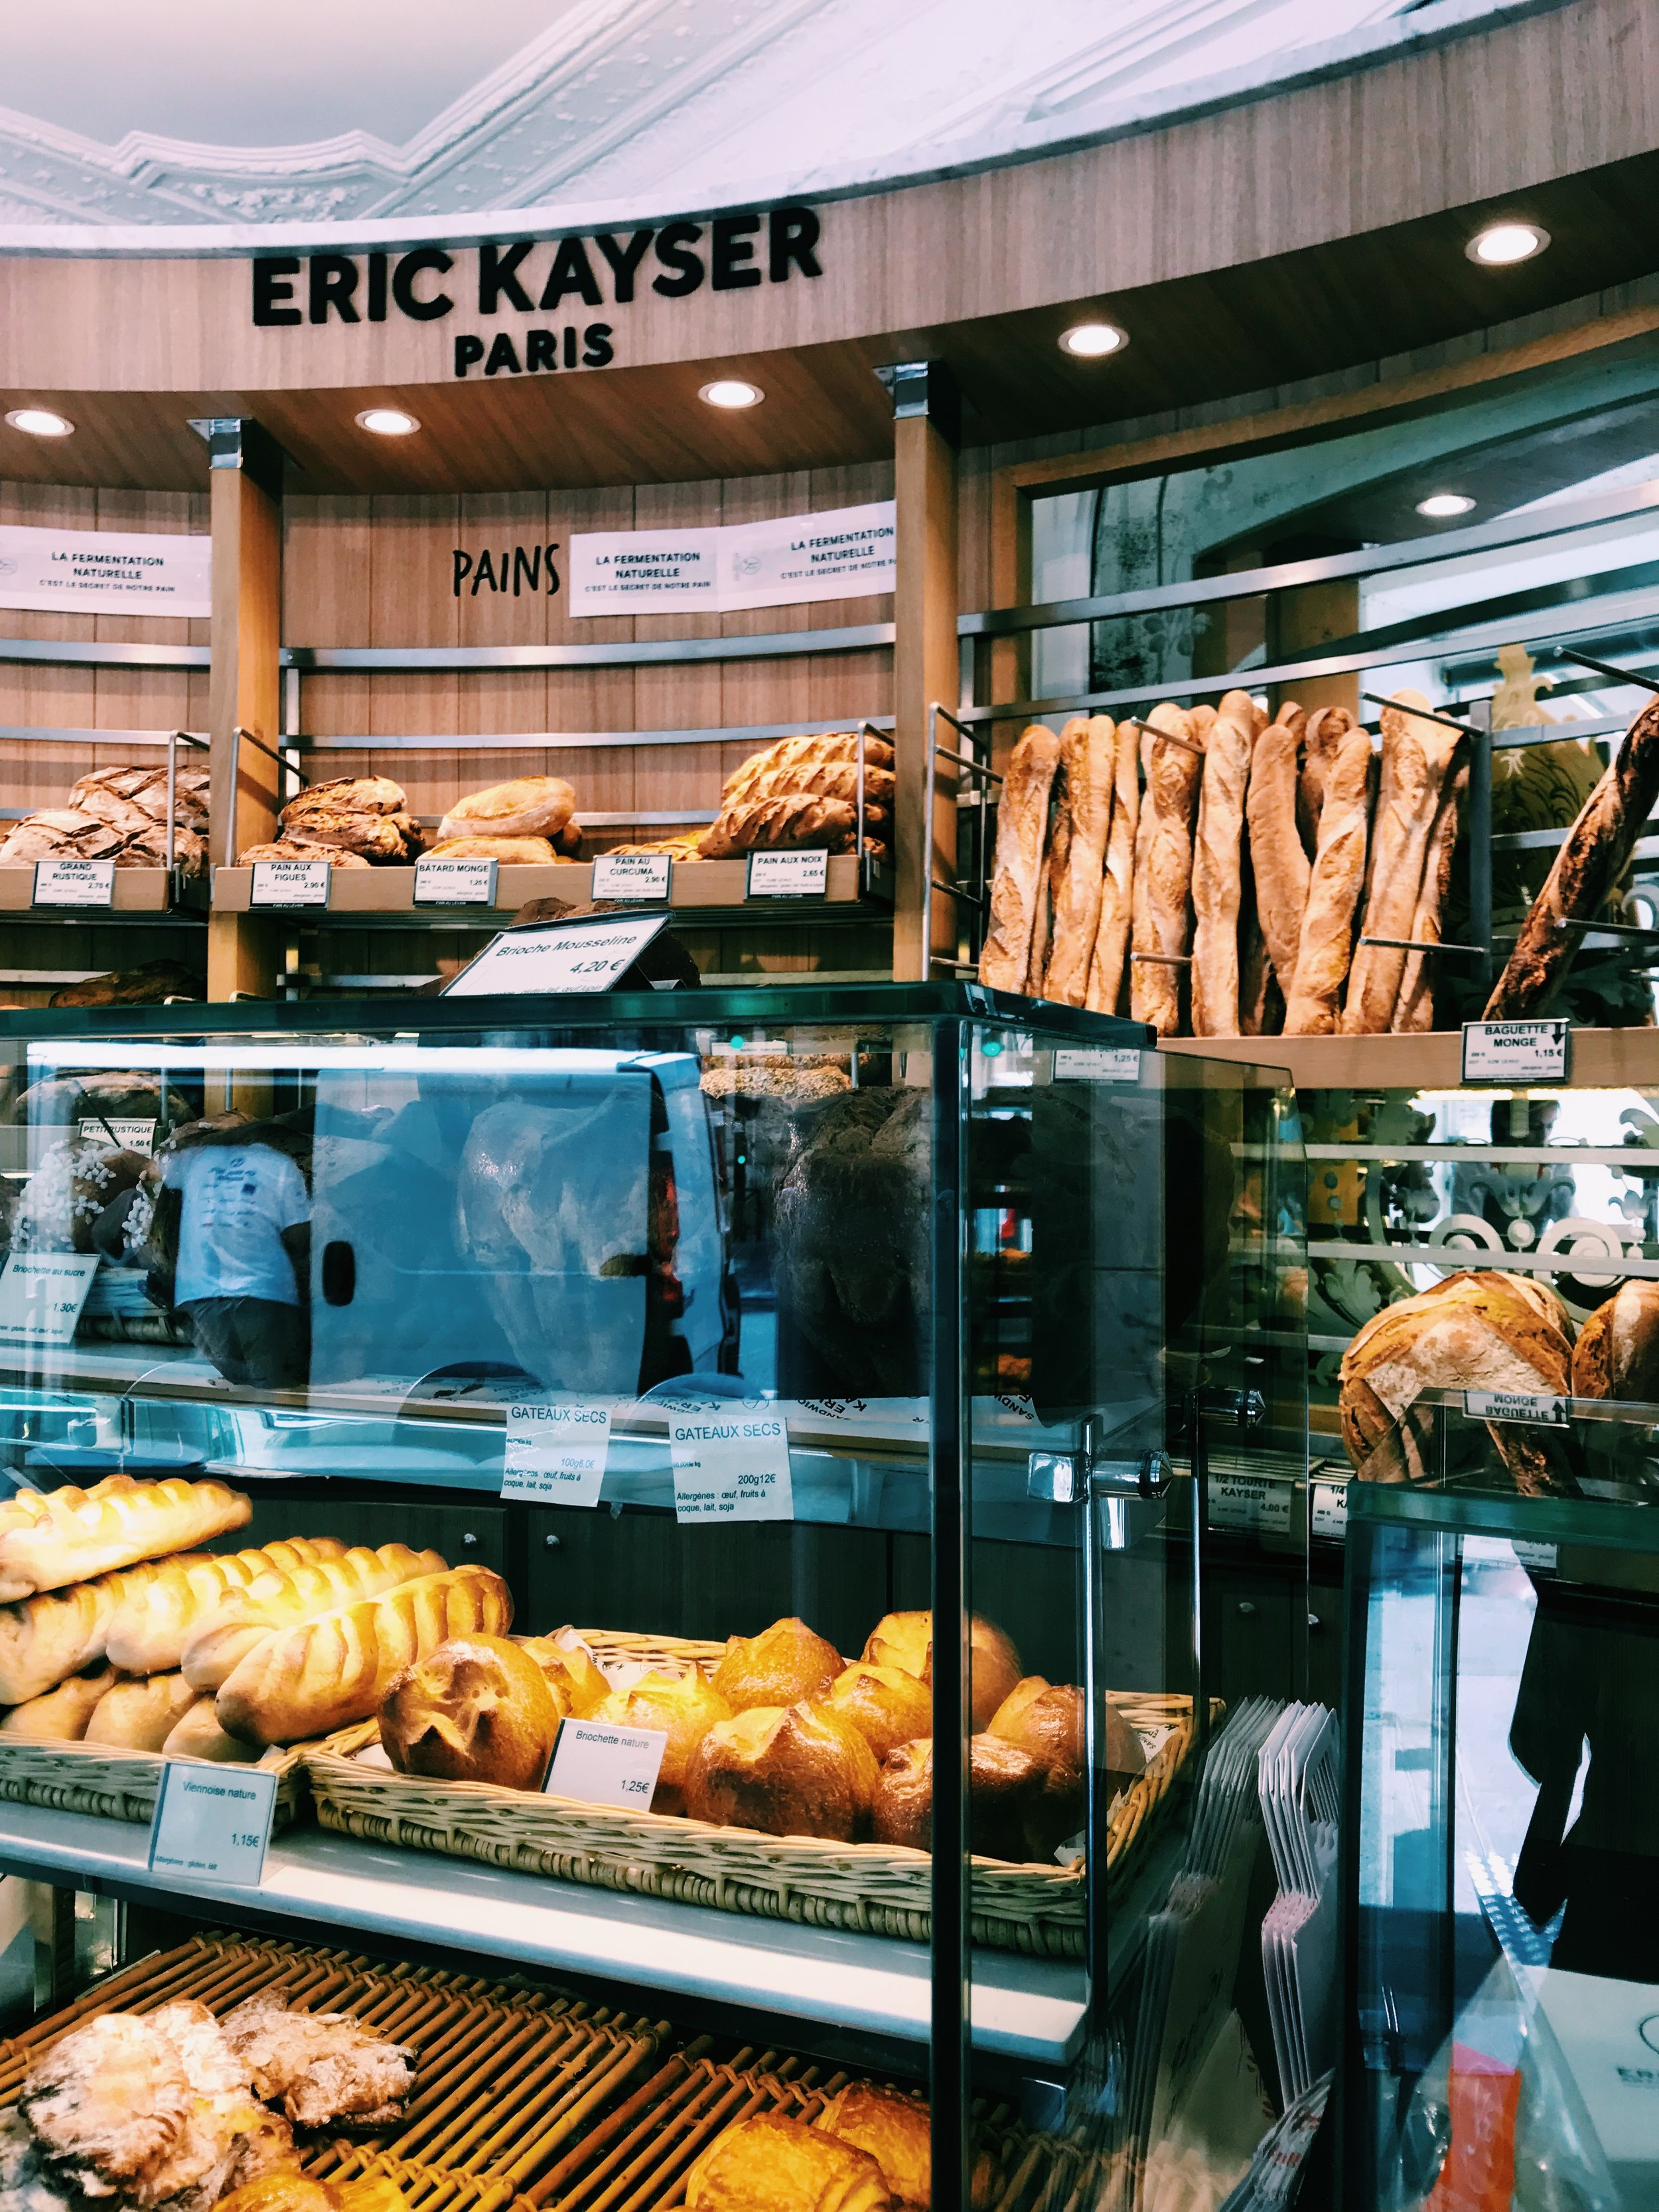 My favorite bakery in Paris, you must get their chocolate croissants!